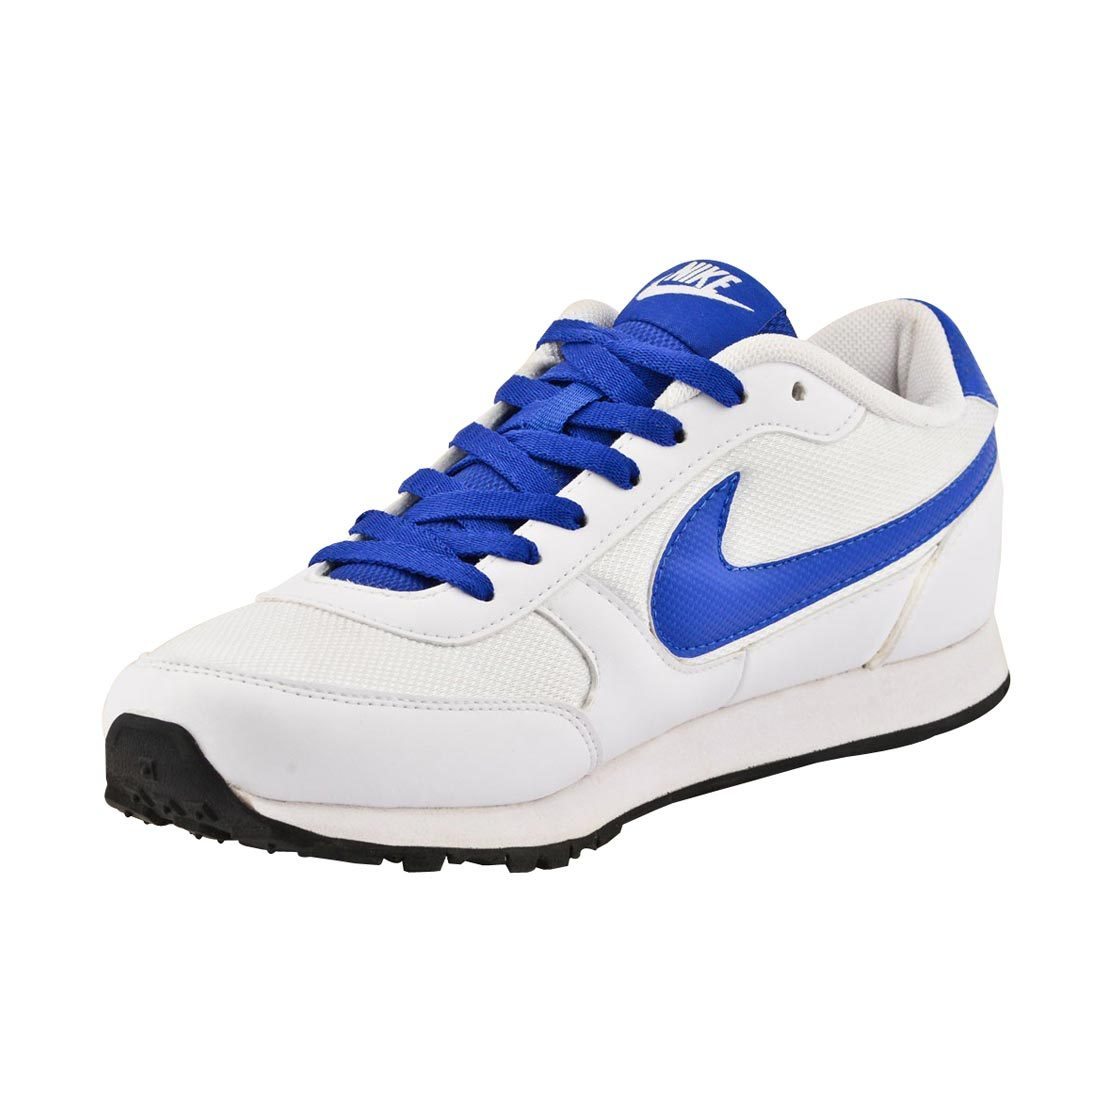 Nike Sports Shoes at Rs.999